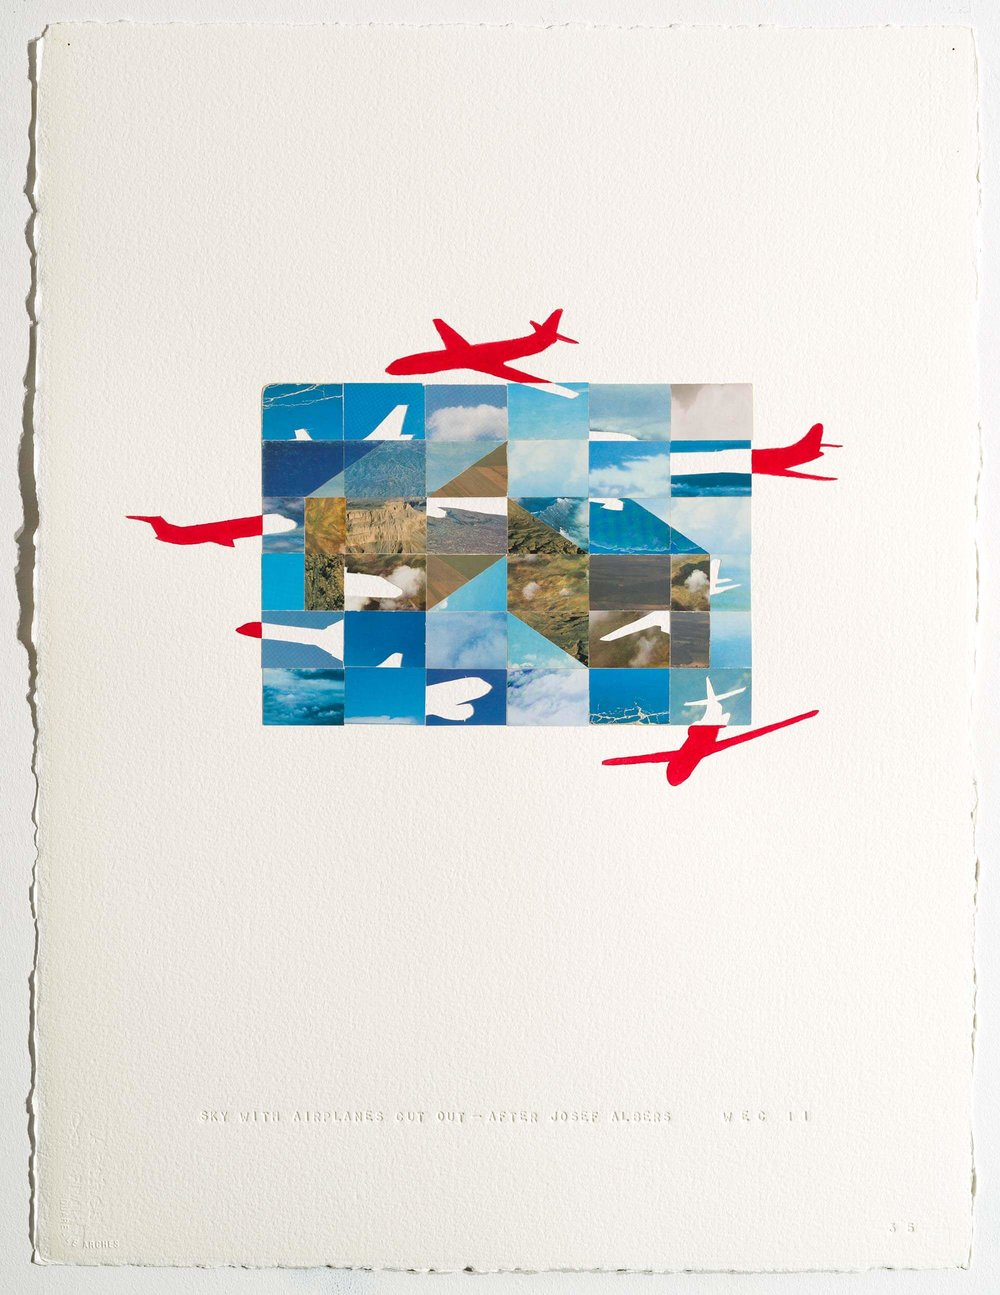 SKY WITH AIRPLANES CUT OUT — AFTER JOSEF ALBERS